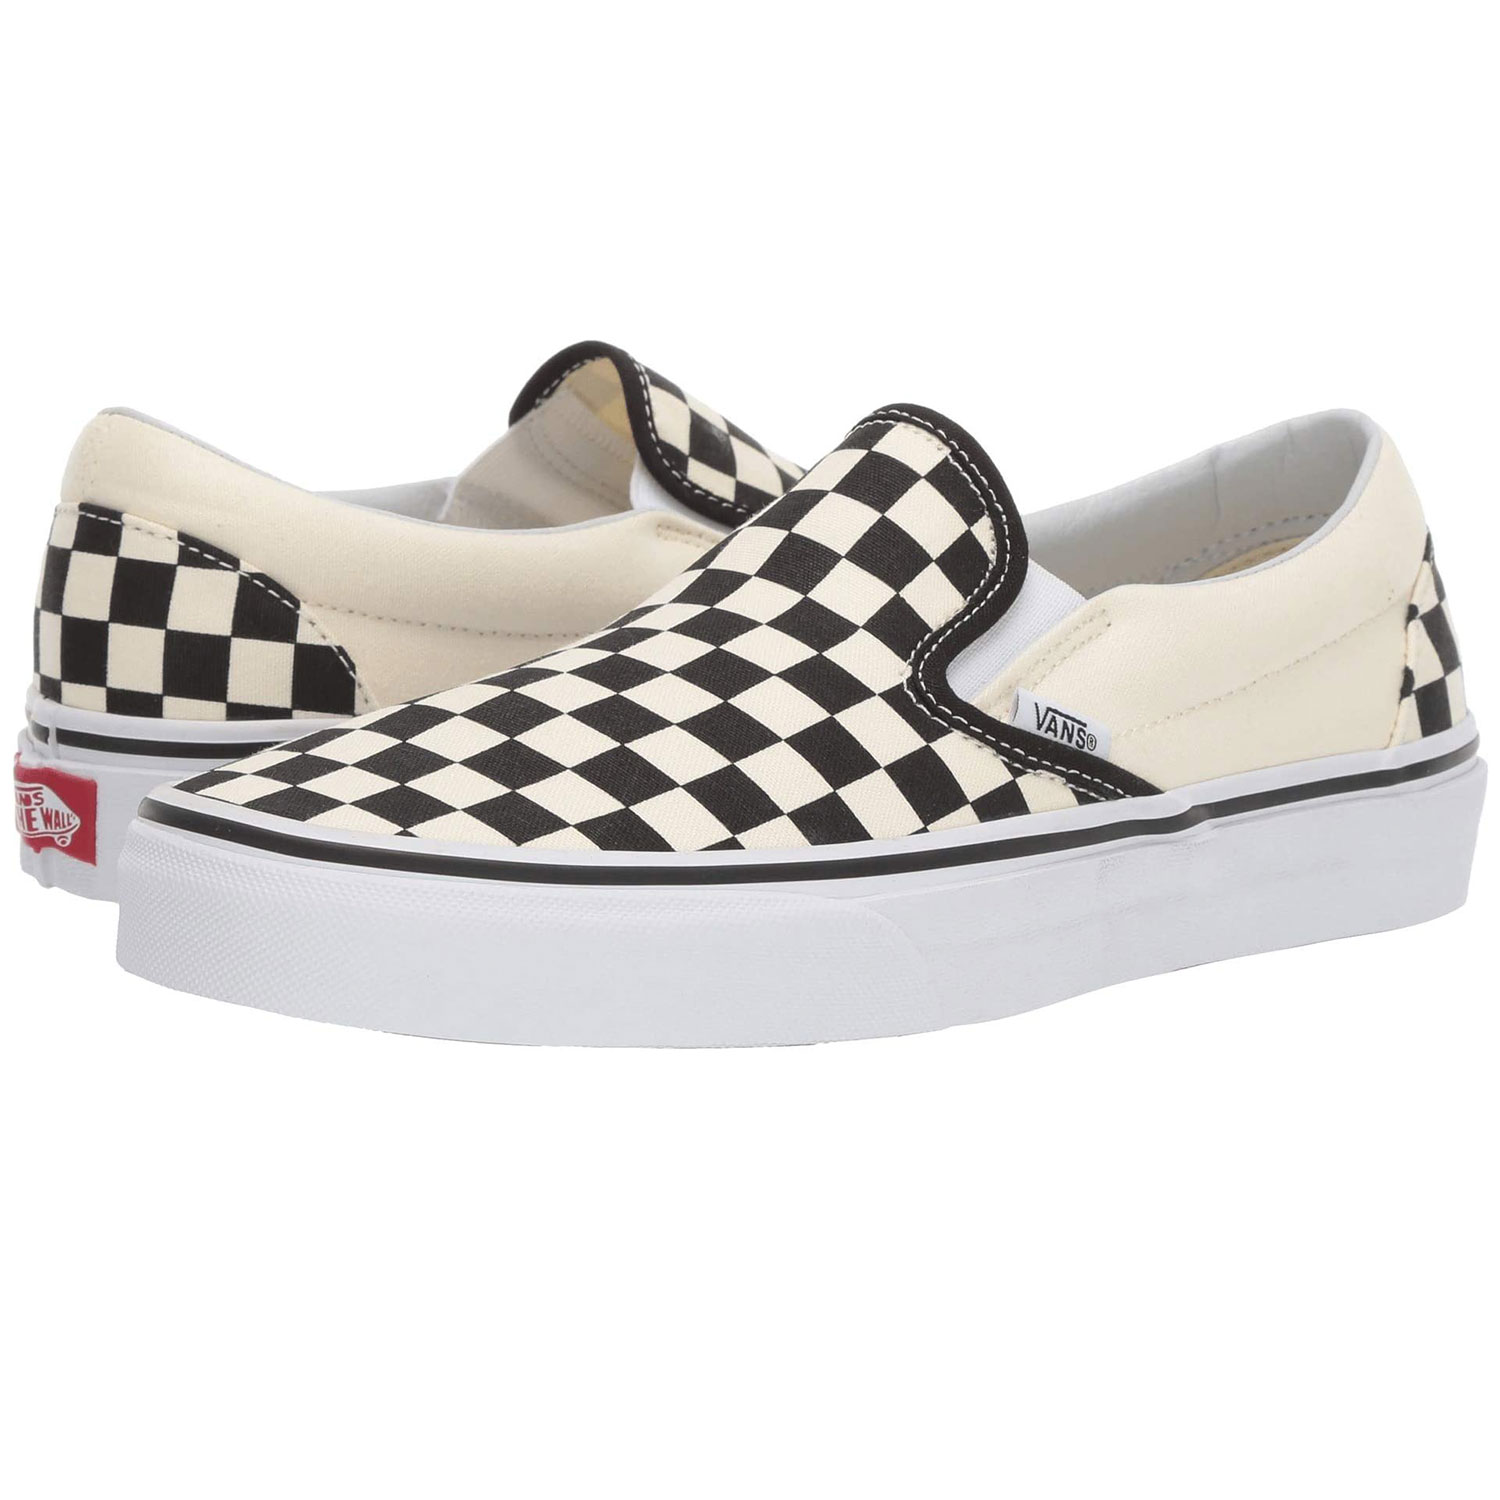 Vans Classic Slip-On Core Classics Checkered Black and White